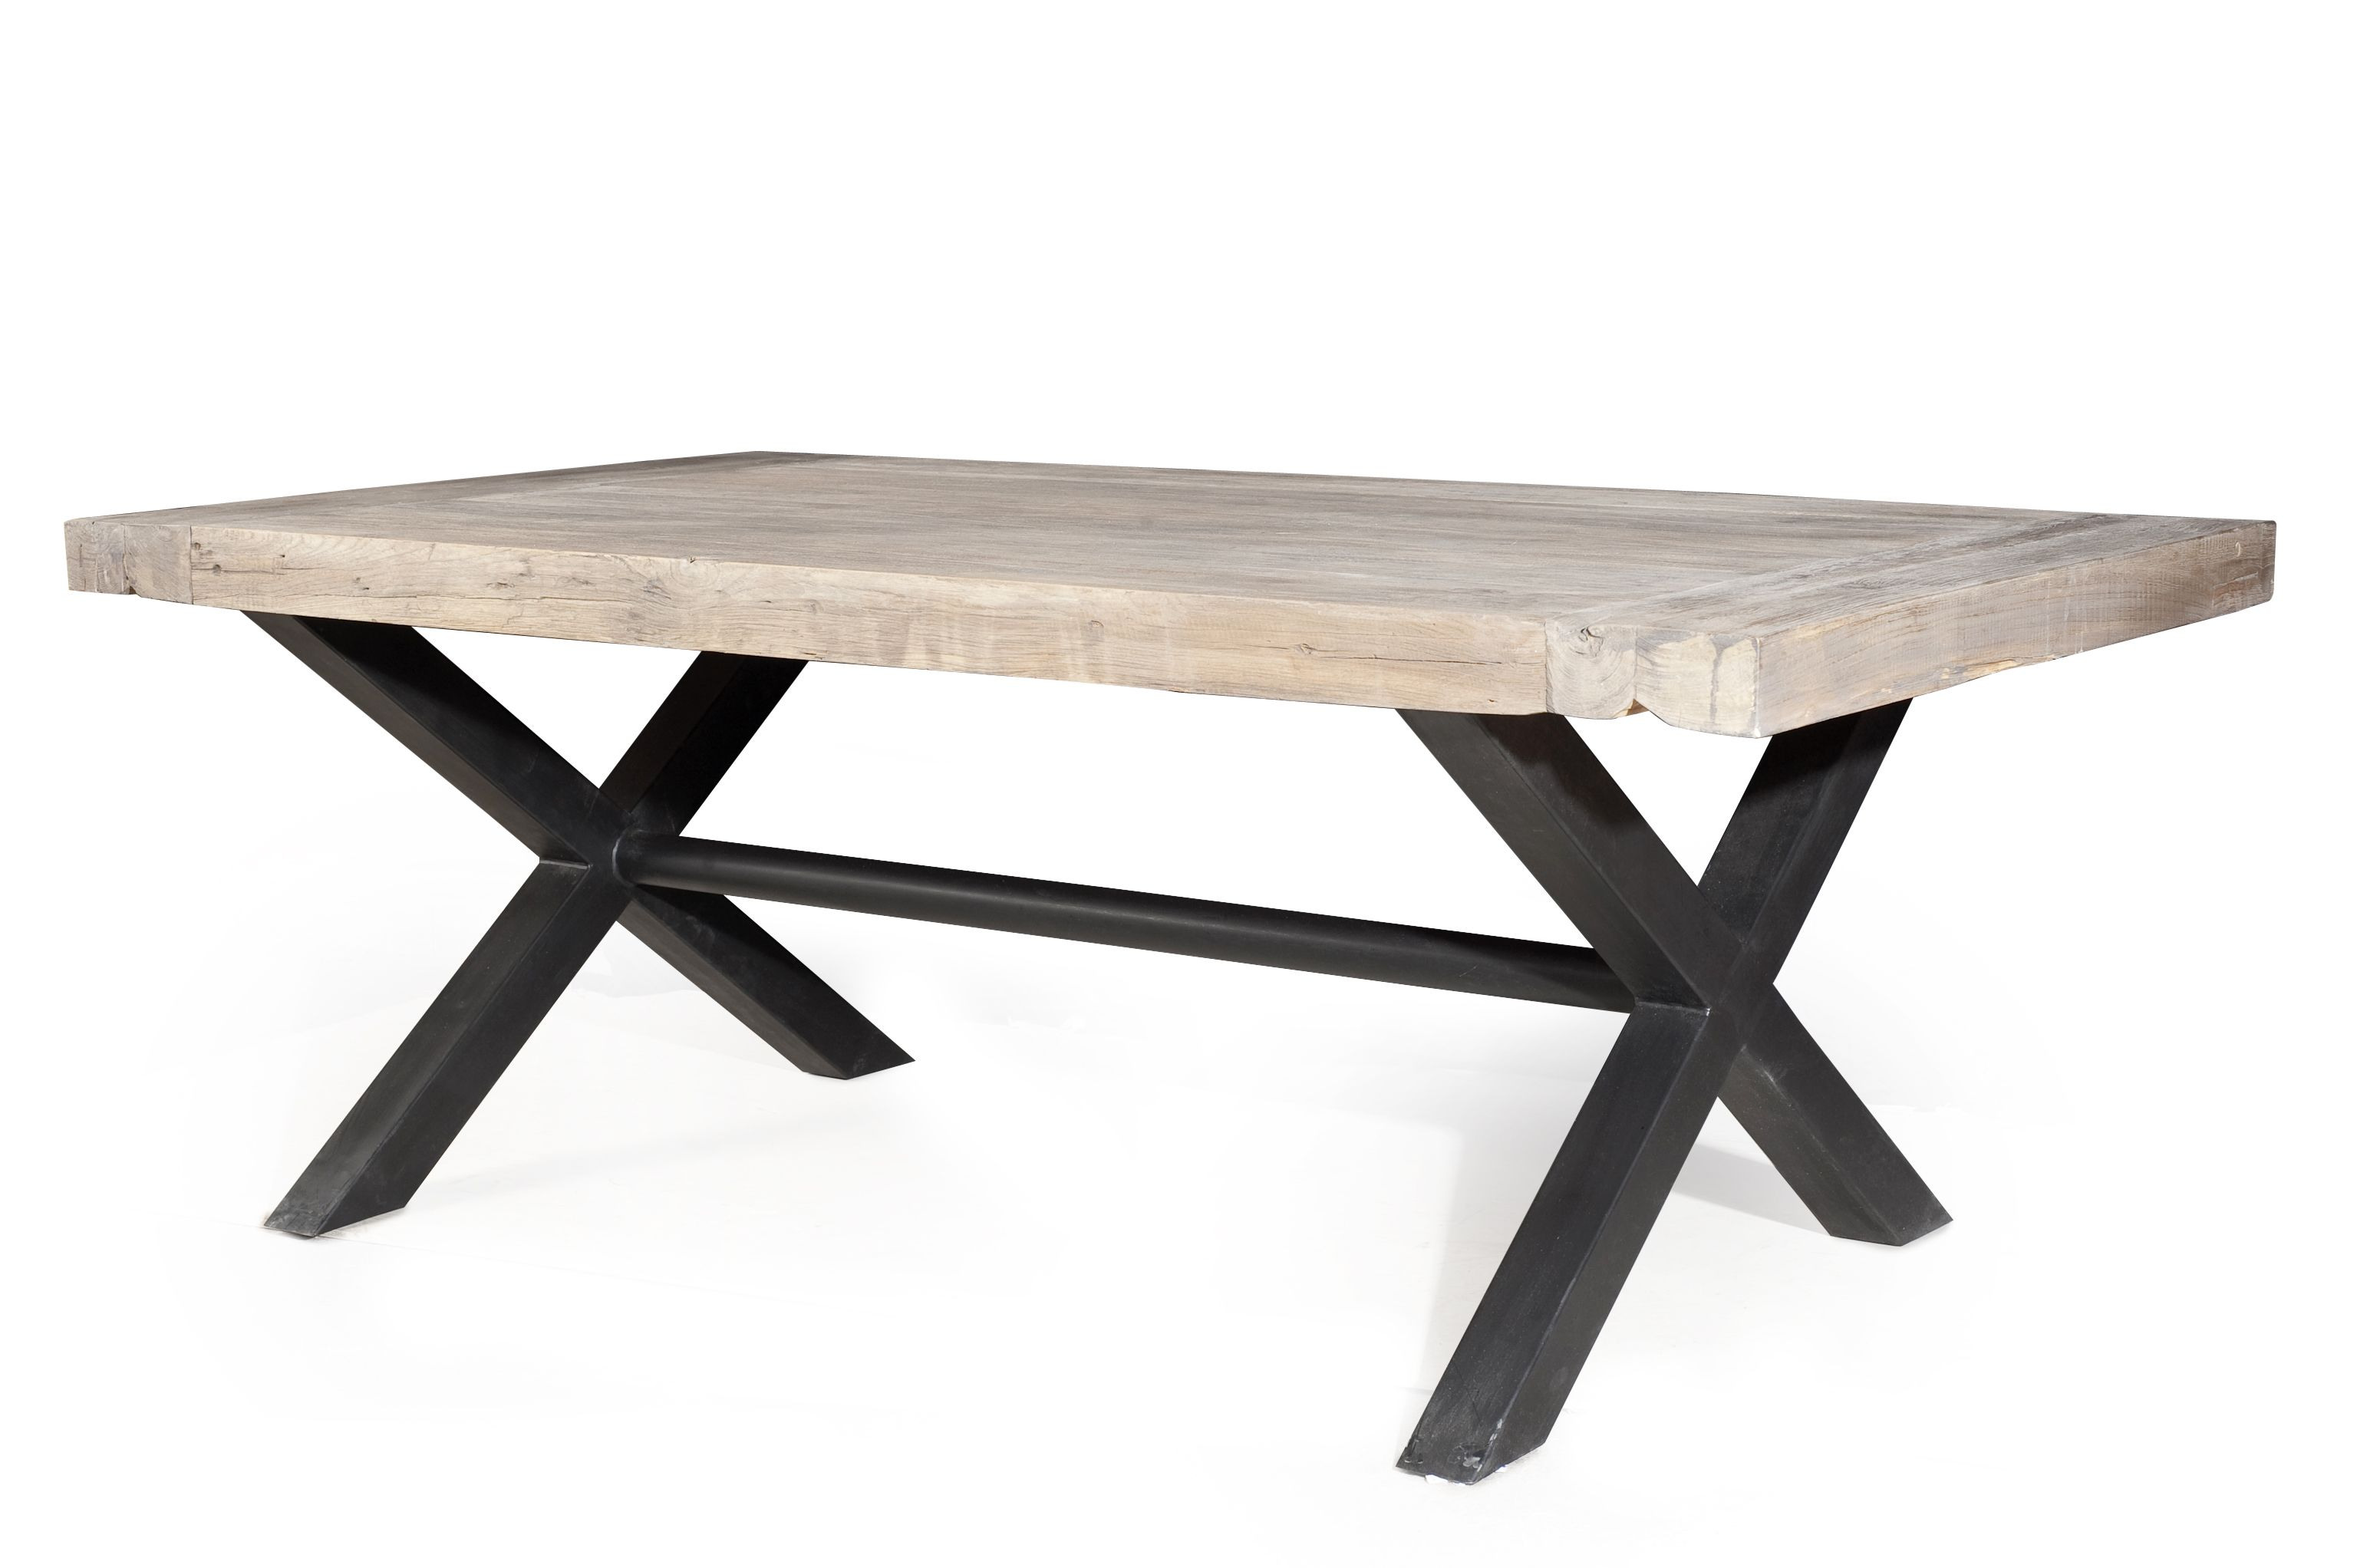 Comparatif table a manger fer forge et bois maison - Table bois pied fer forge ...